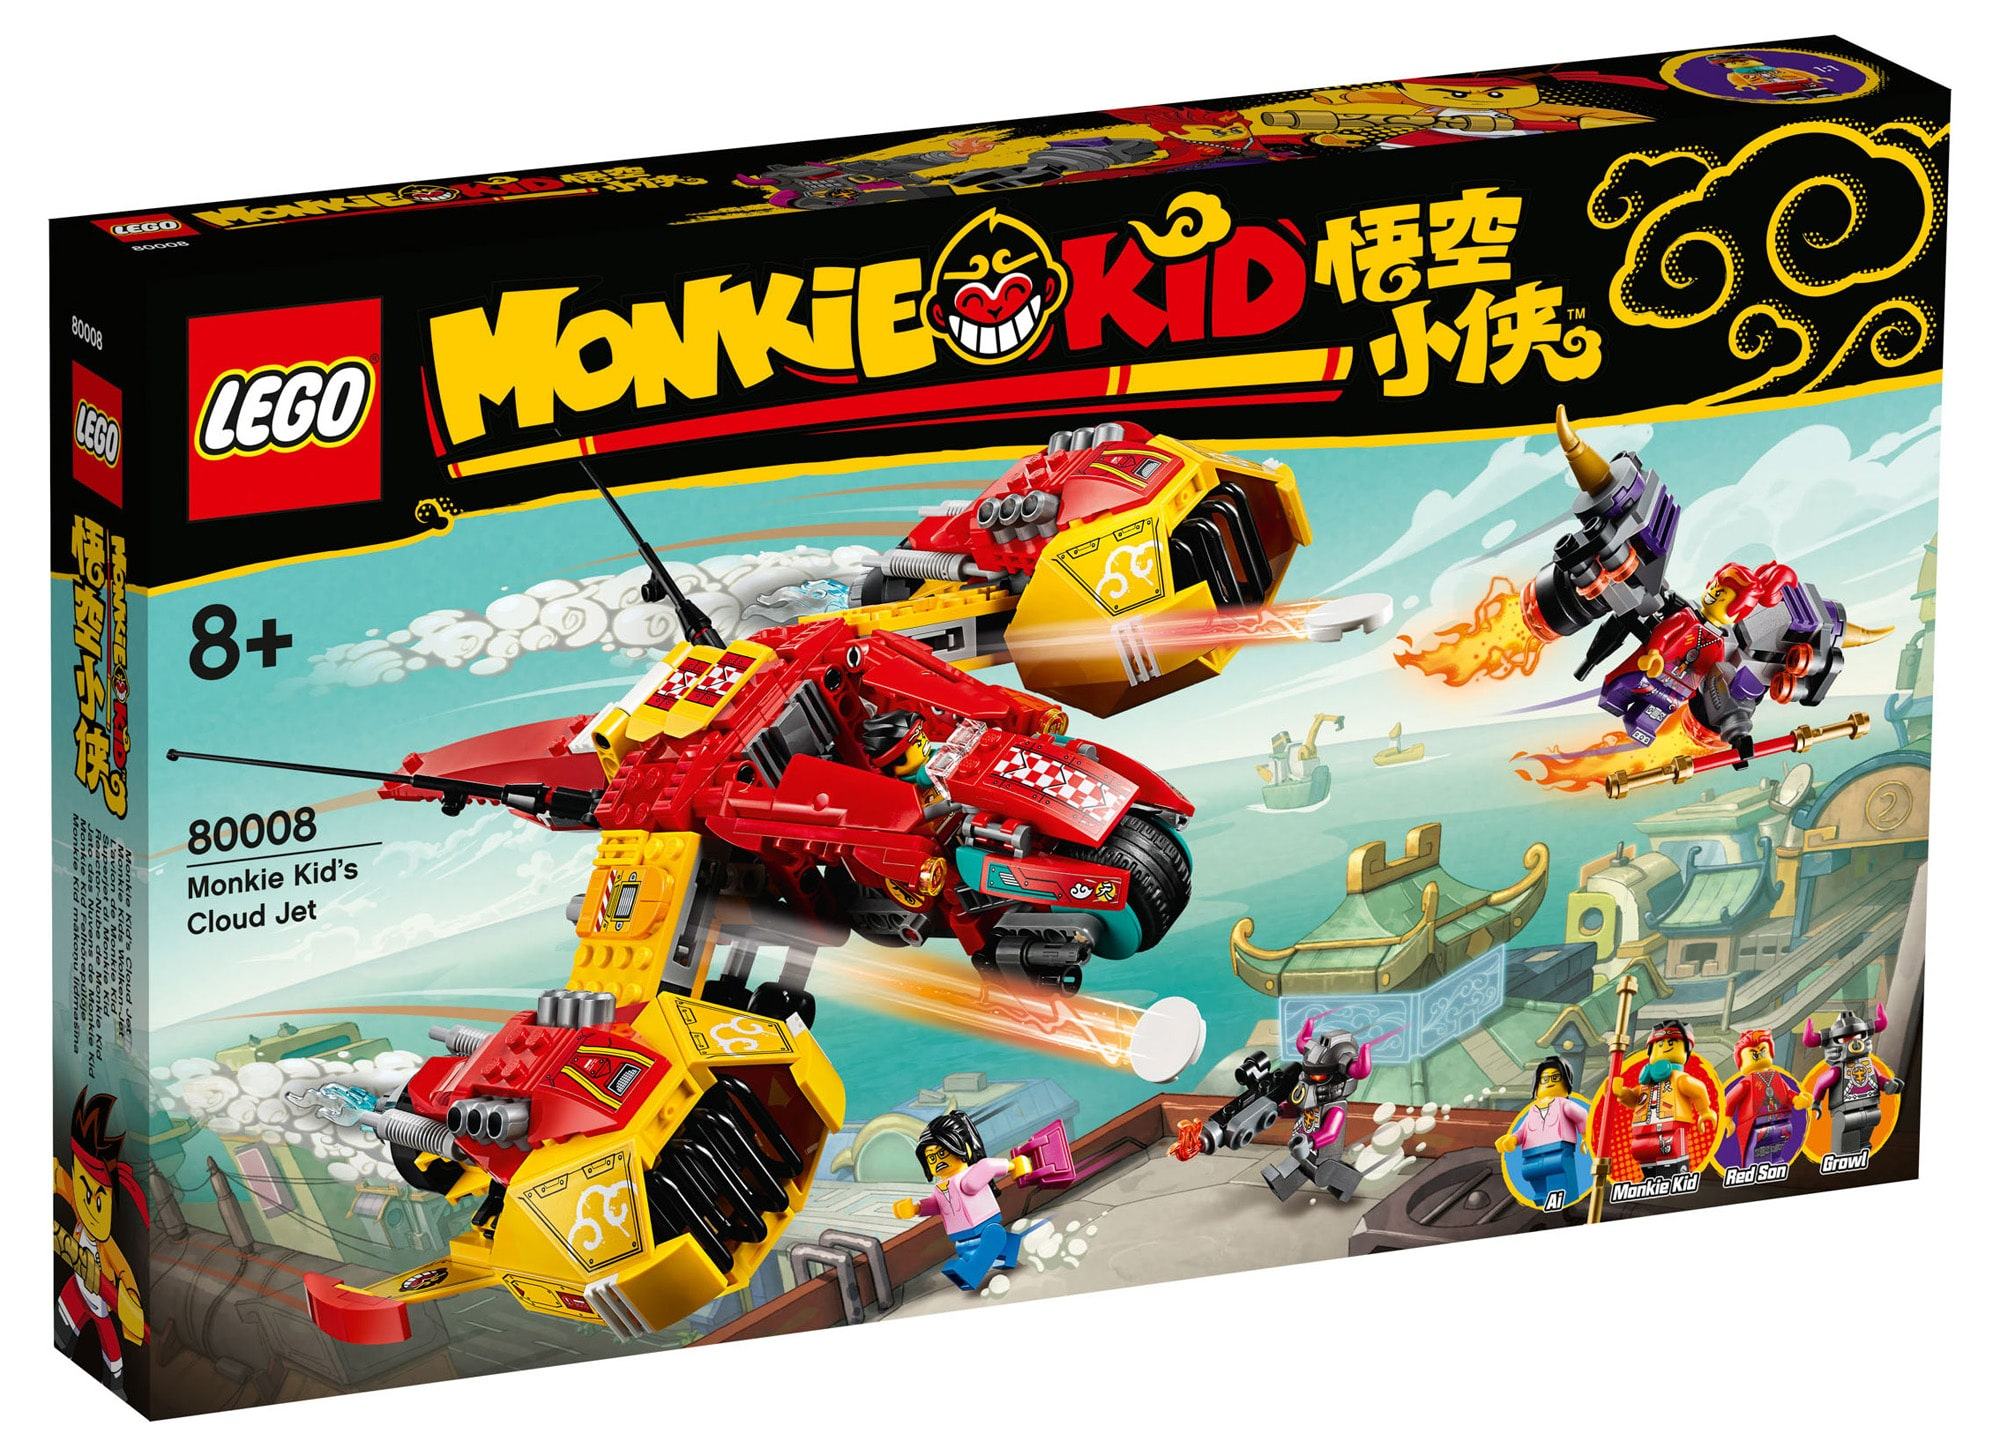 LEGO Monkie Kid 80008 Monkie Kids Cloud Jet